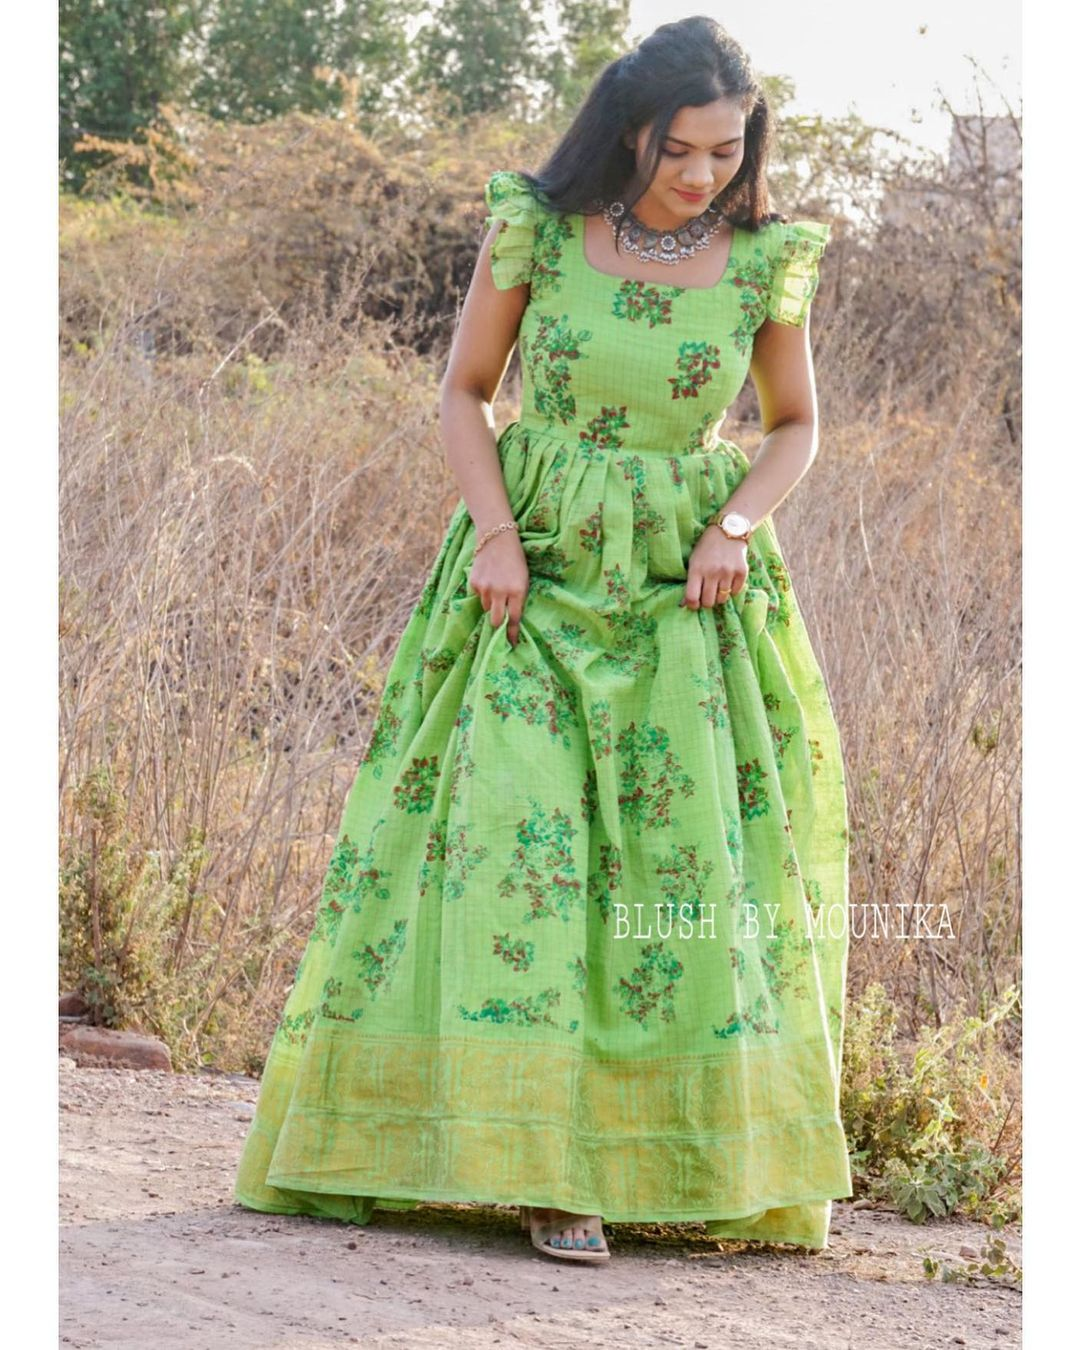 Chiluka. Price : ₹4200/- Handloom Cotton Maxi Dress with Floral Print Zari checks and Zari border. Sleeves can be customized. 2021-04-14